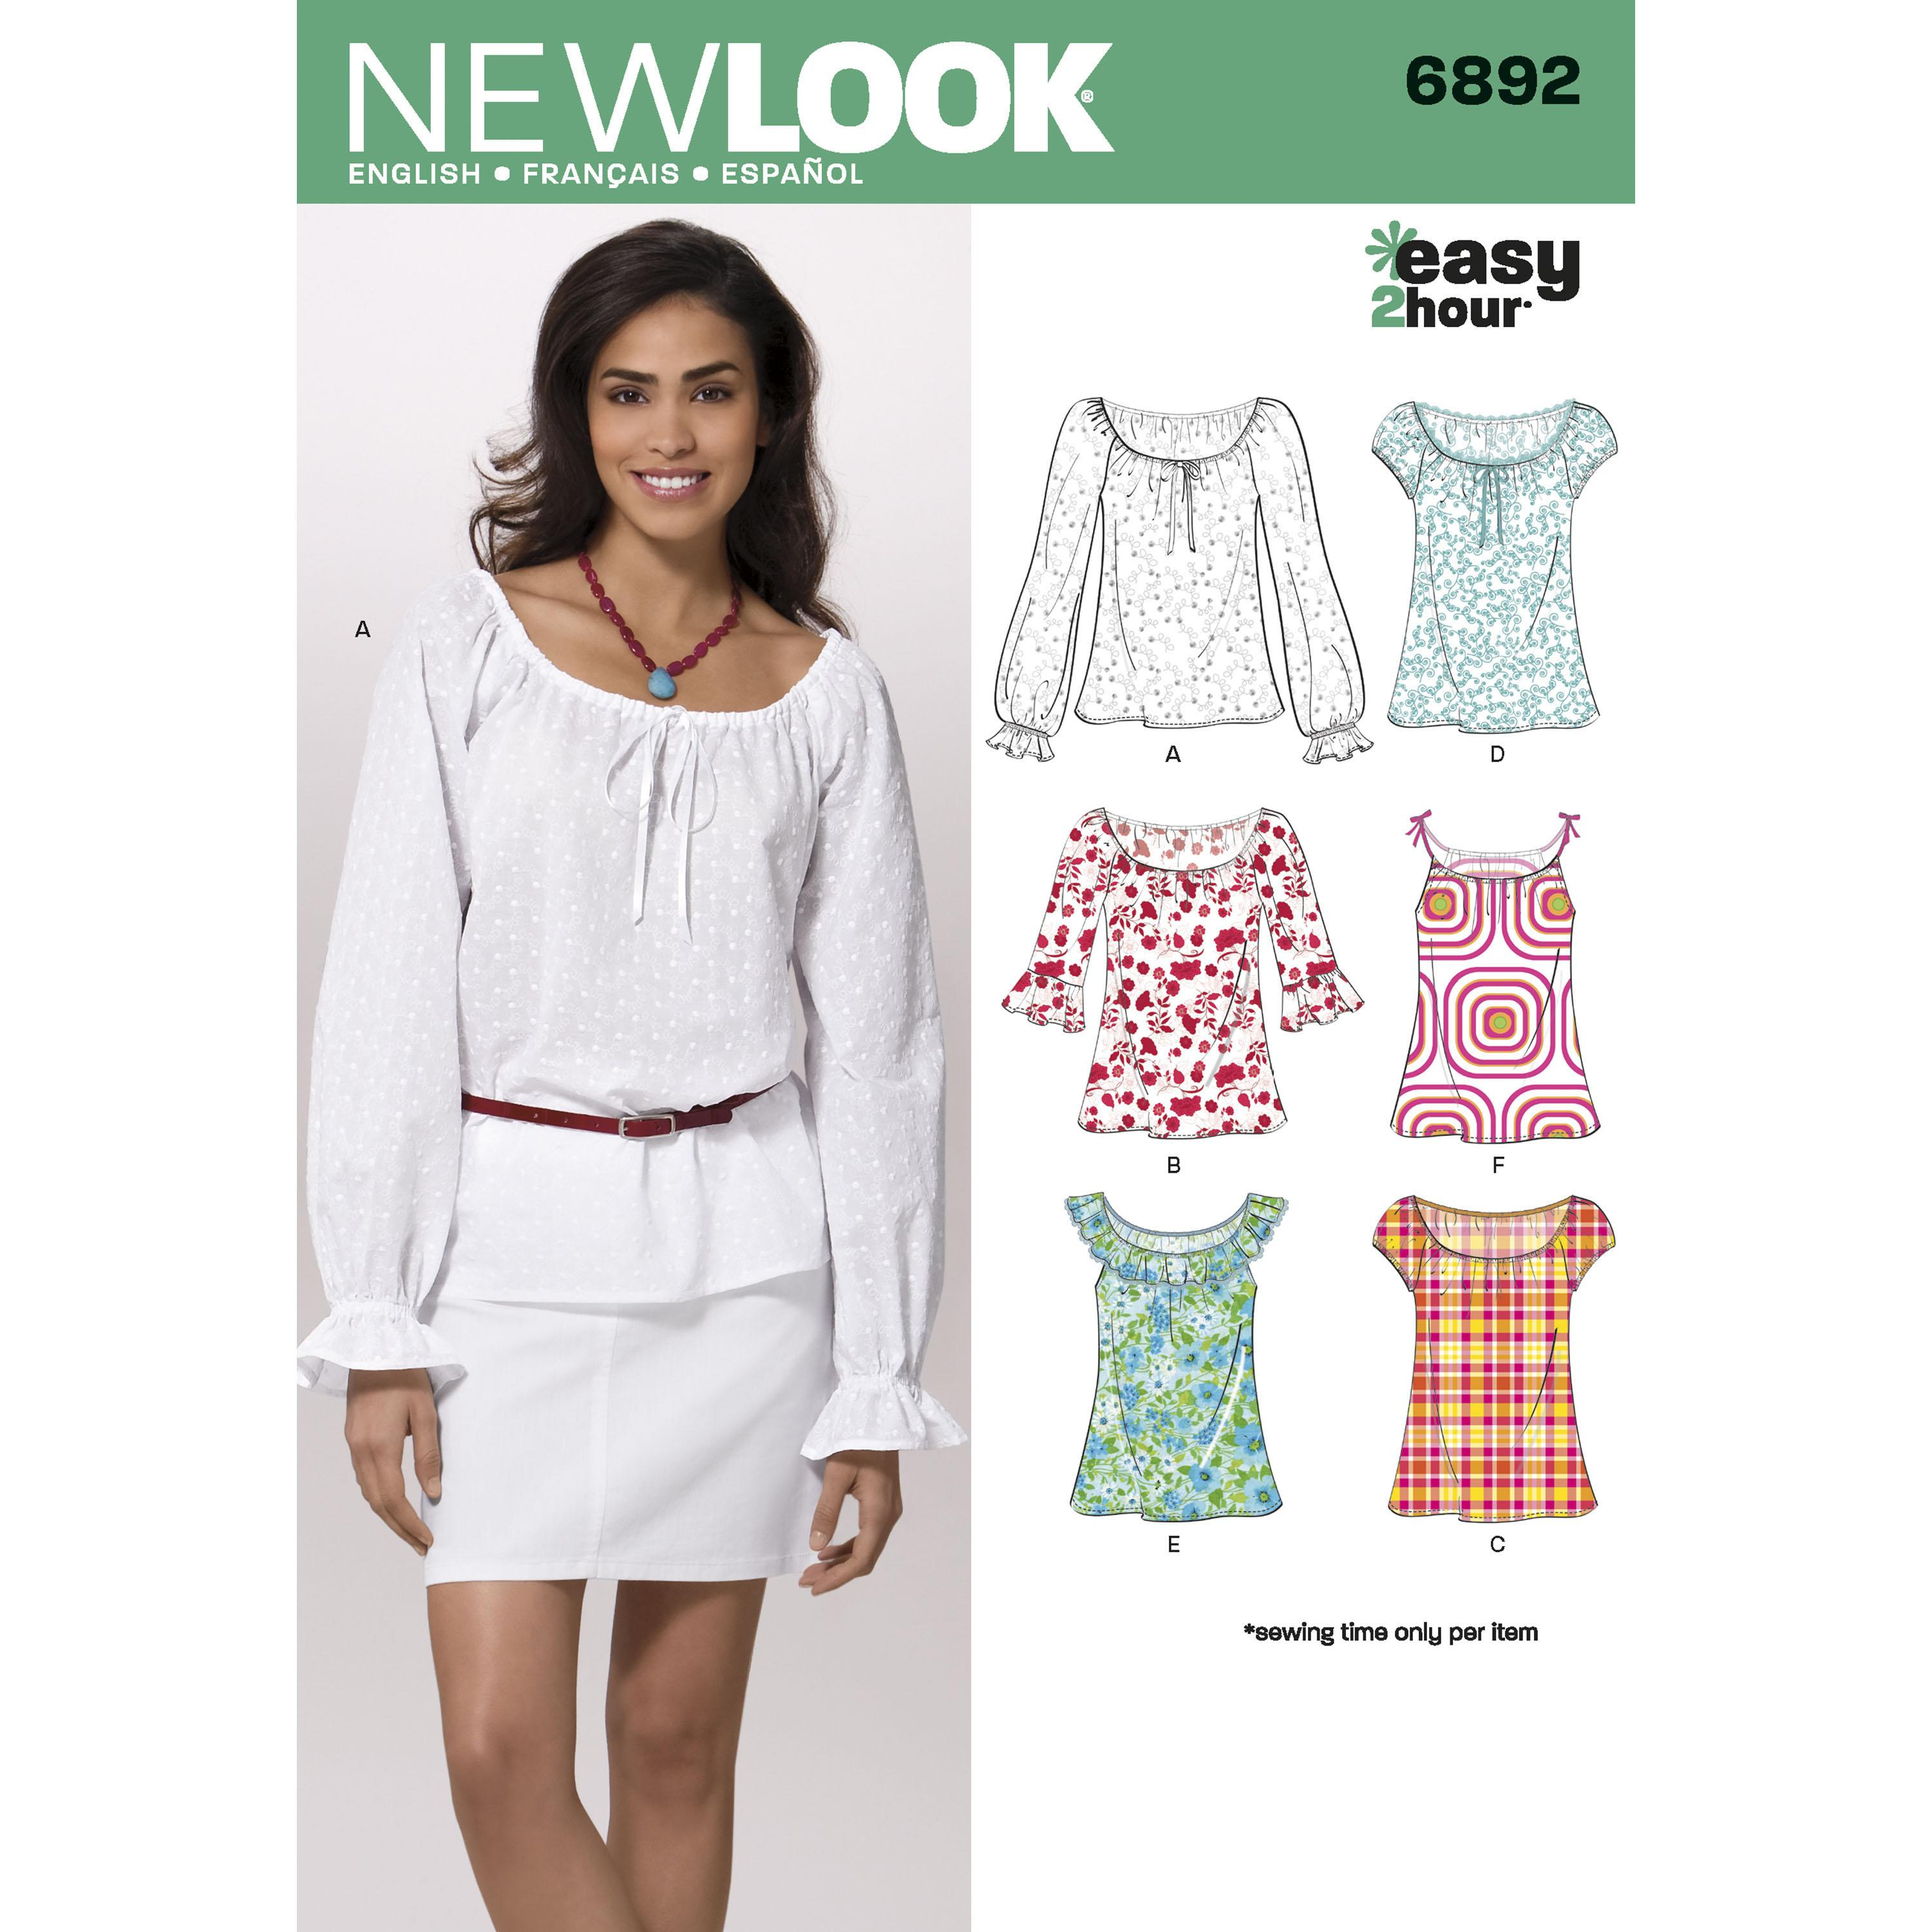 NewLook N6892 Misses Tops